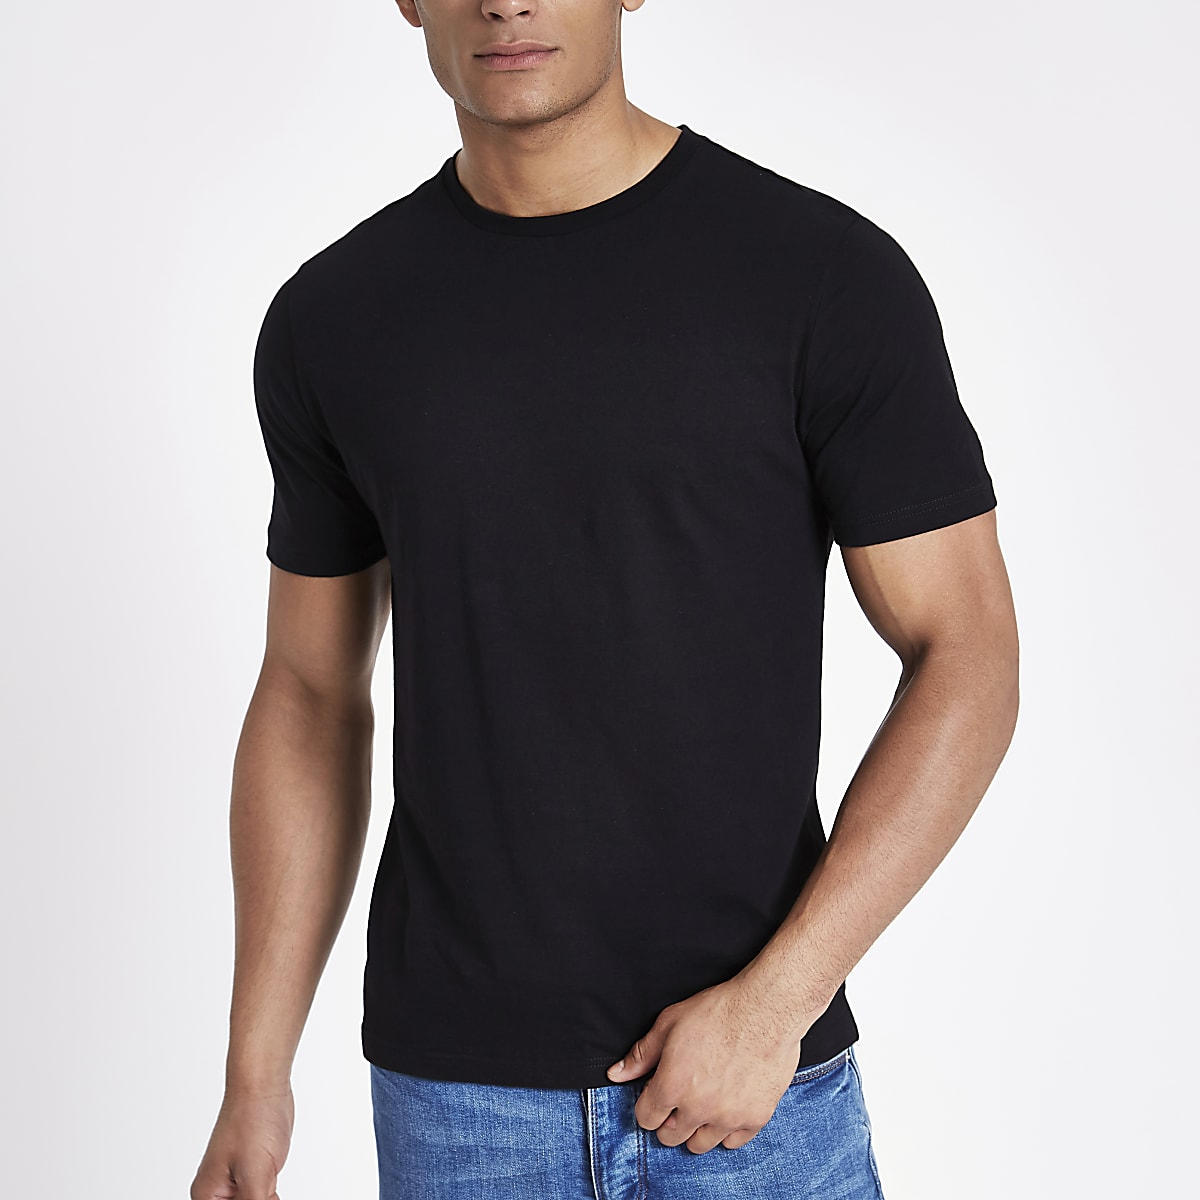 black slim fit crew neck t shirt t shirts t shirts. Black Bedroom Furniture Sets. Home Design Ideas